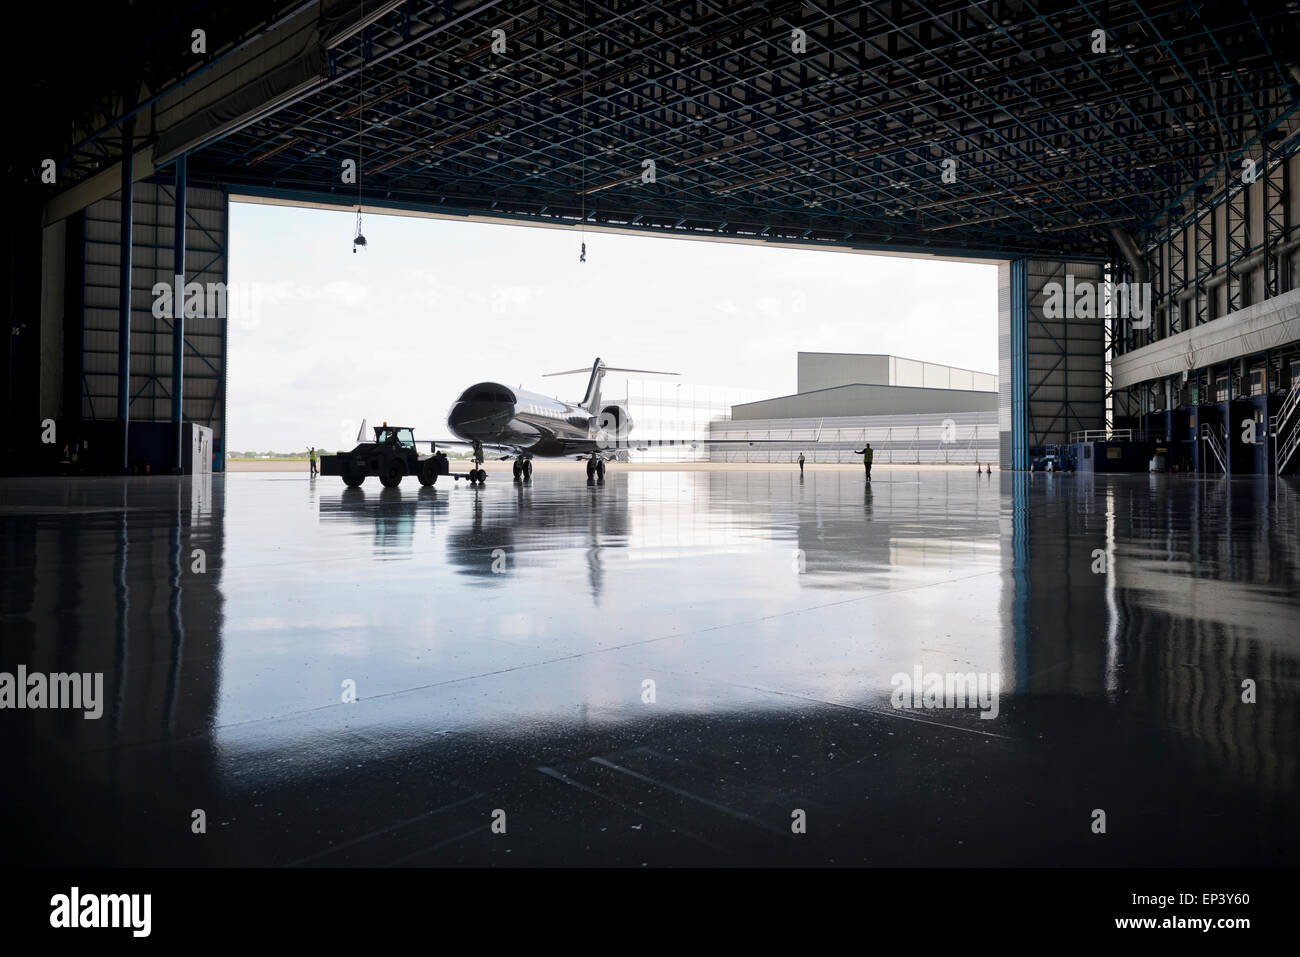 Aircraft being maneuvered on the ground into a hanger - Stock Image